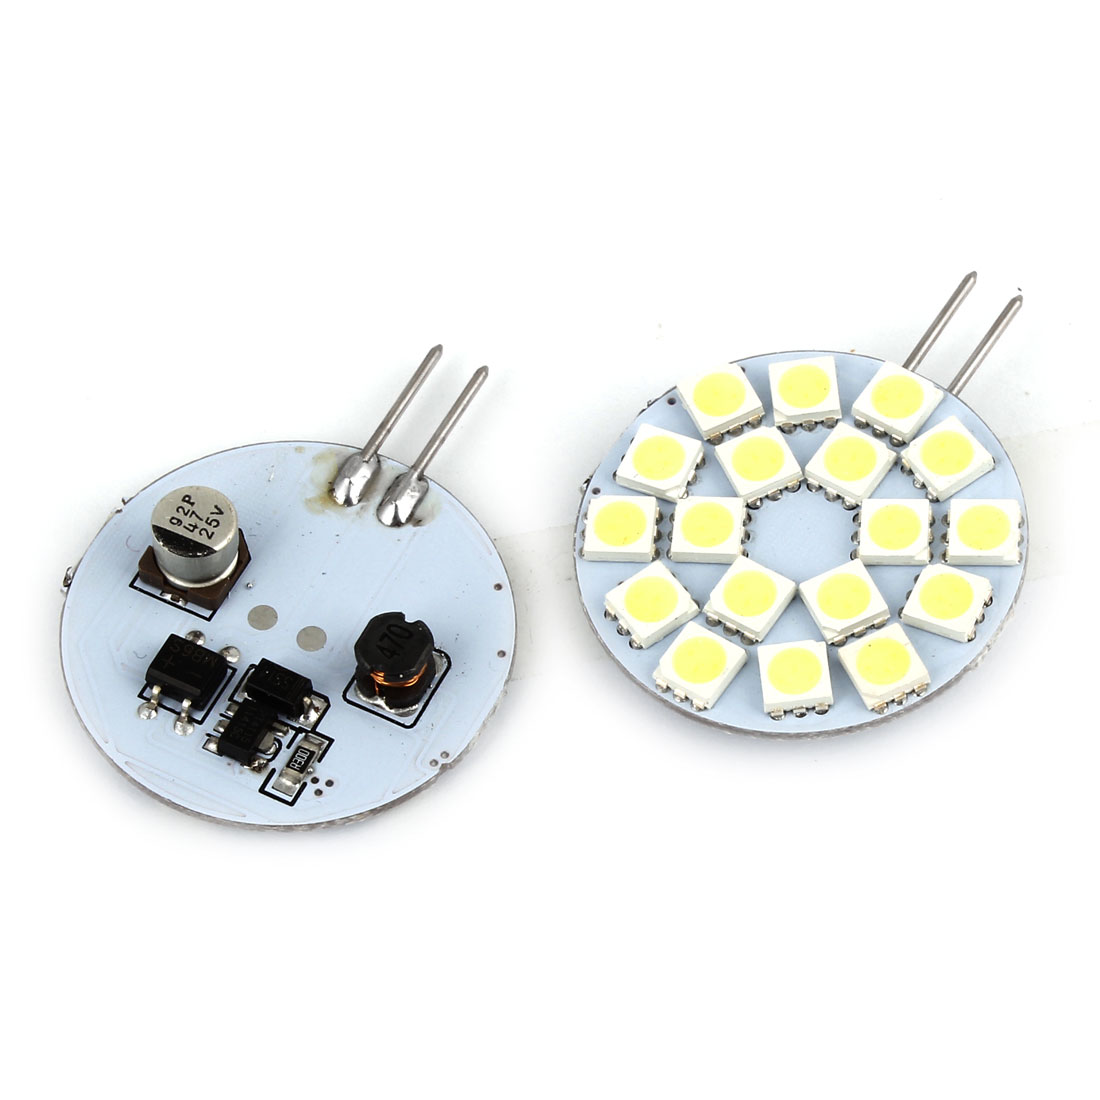 2 Pcs Sdie Pin G4 Base White 5050 SMD 18 LED Bulb Light Lamp Internal